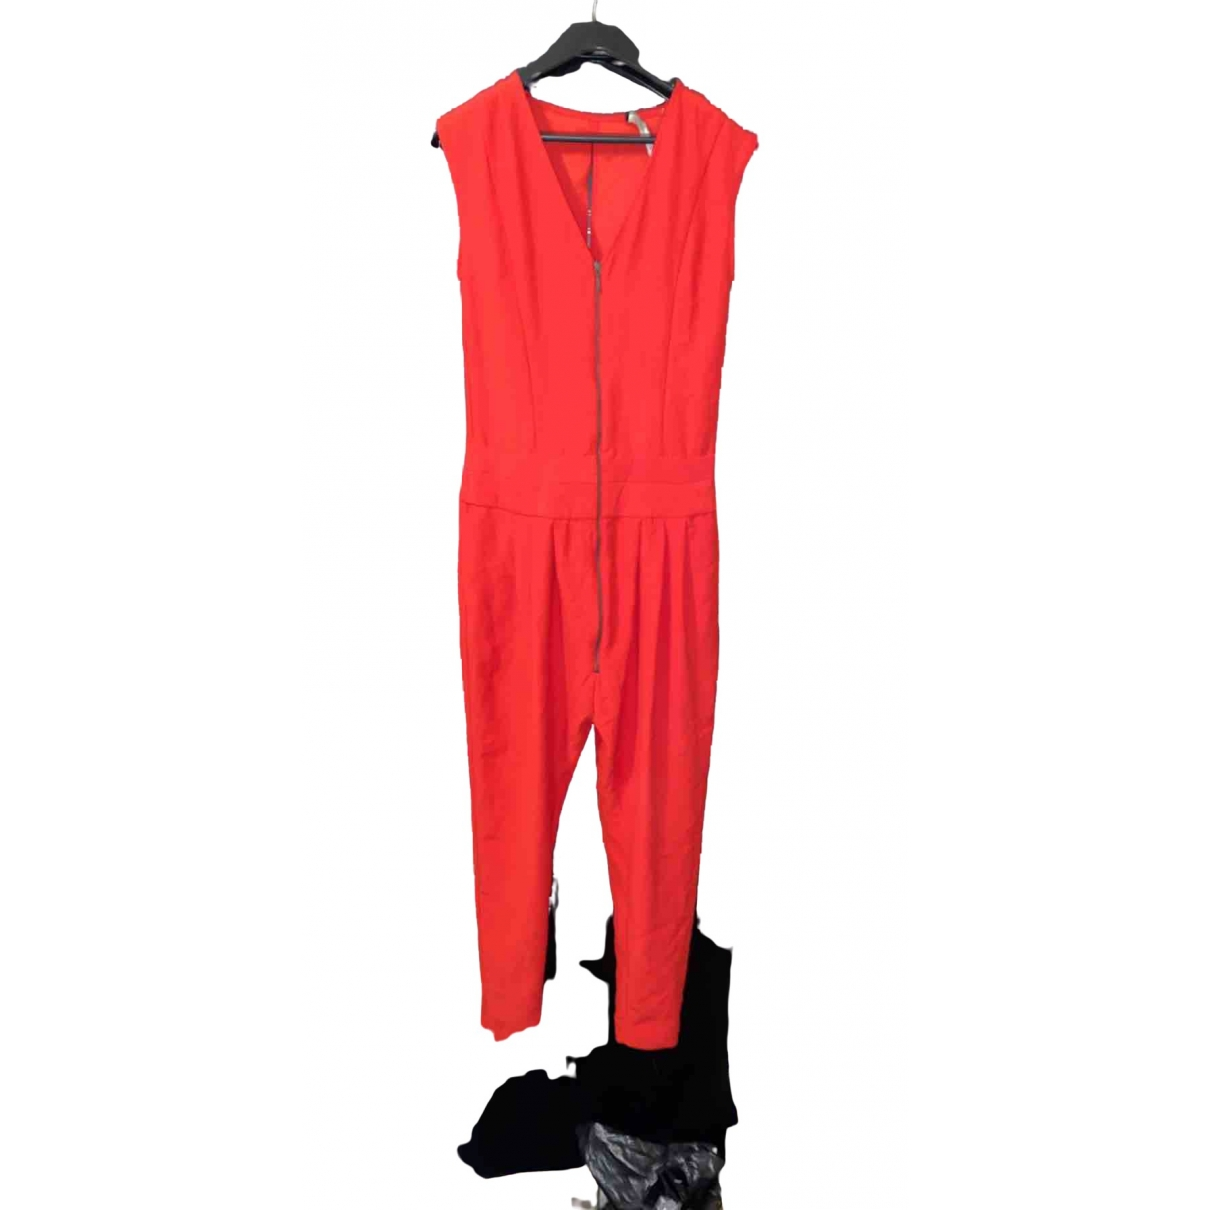 Zara \N Red jumpsuit for Women 38 FR